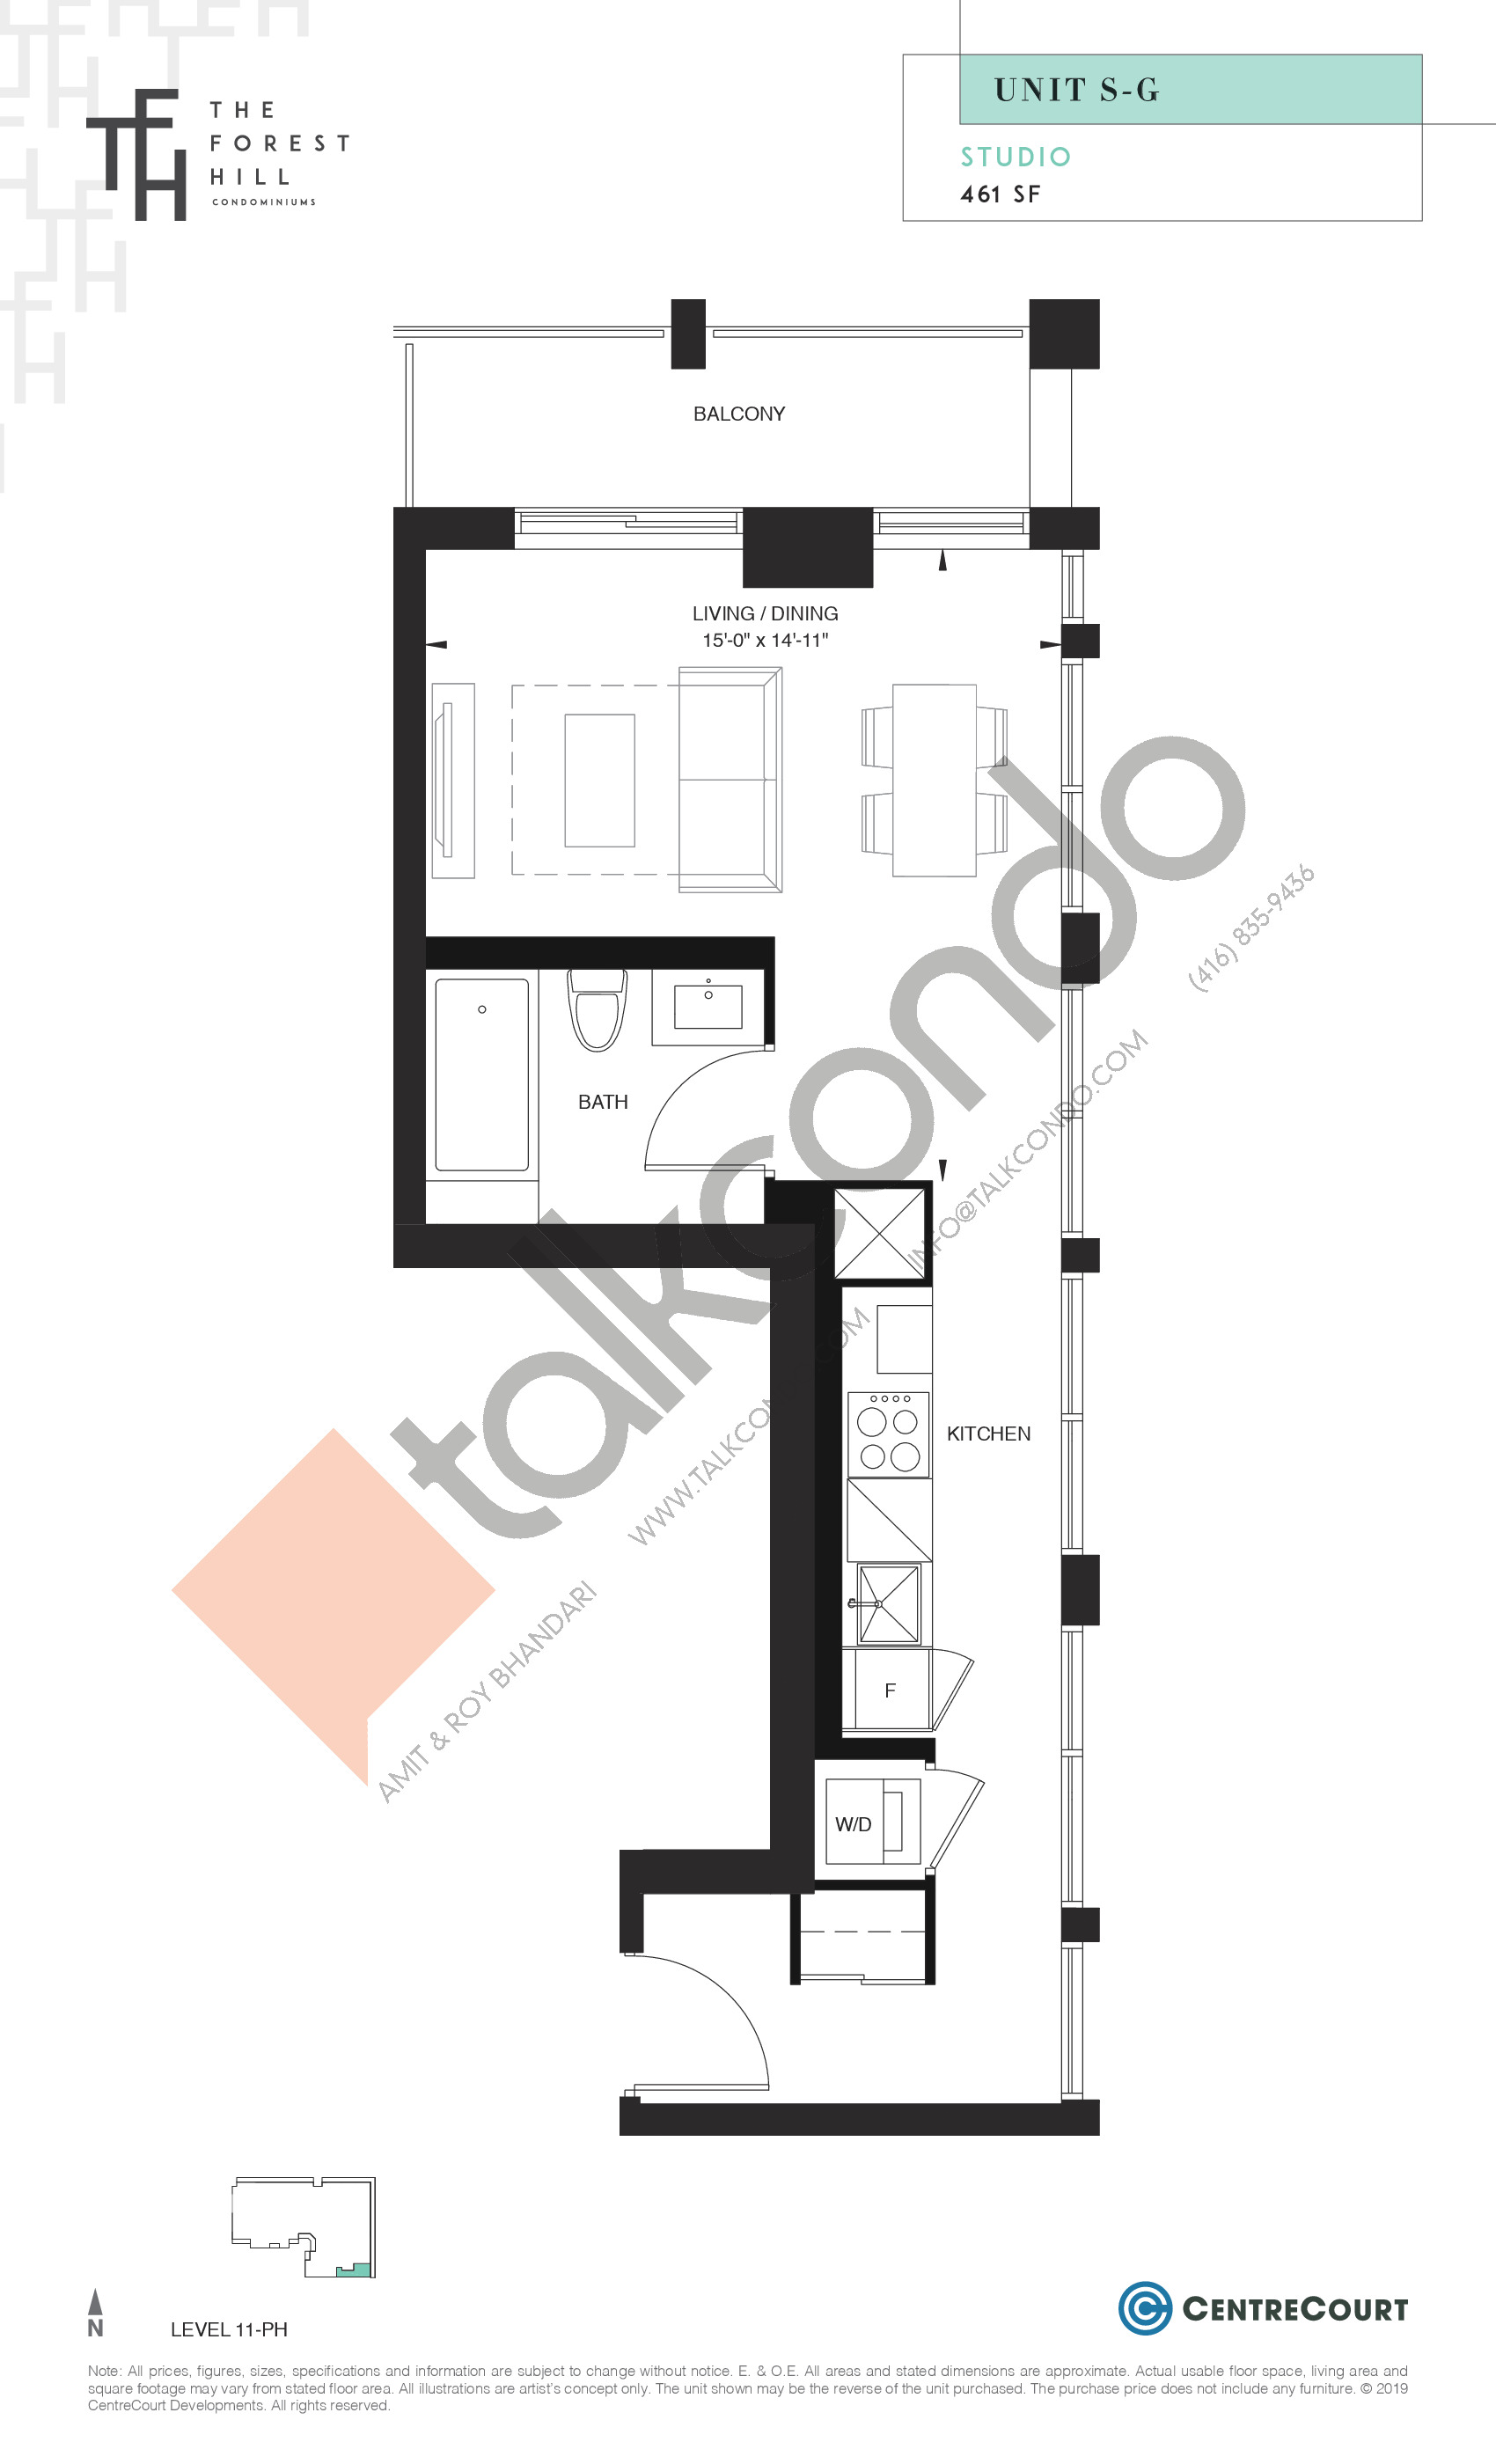 Unit S-G Floor Plan at The Forest Hill Condos - 461 sq.ft